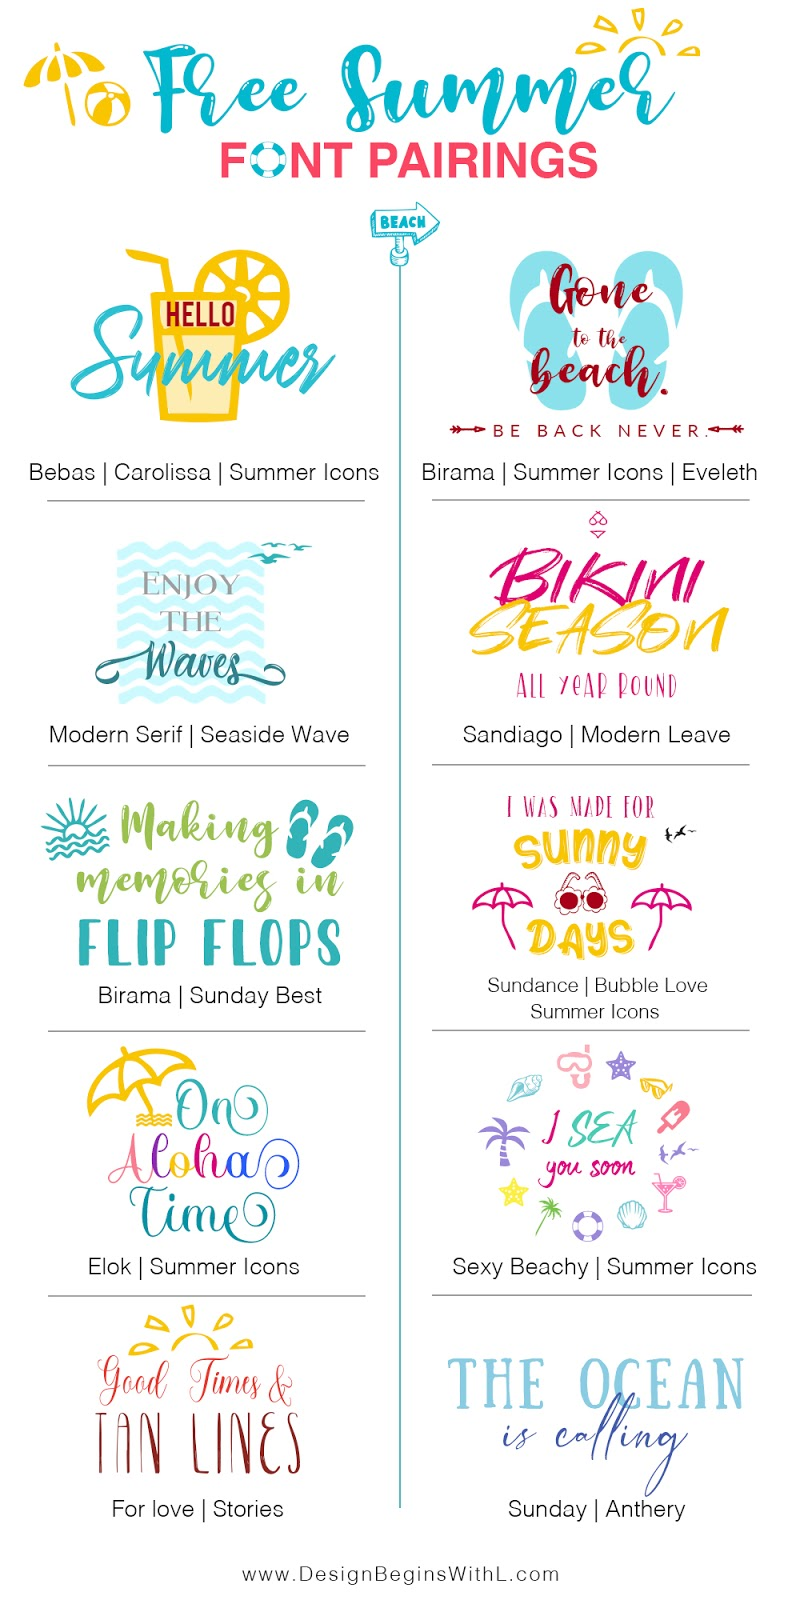 10 Free Summer Font Pairings for DIY Projects